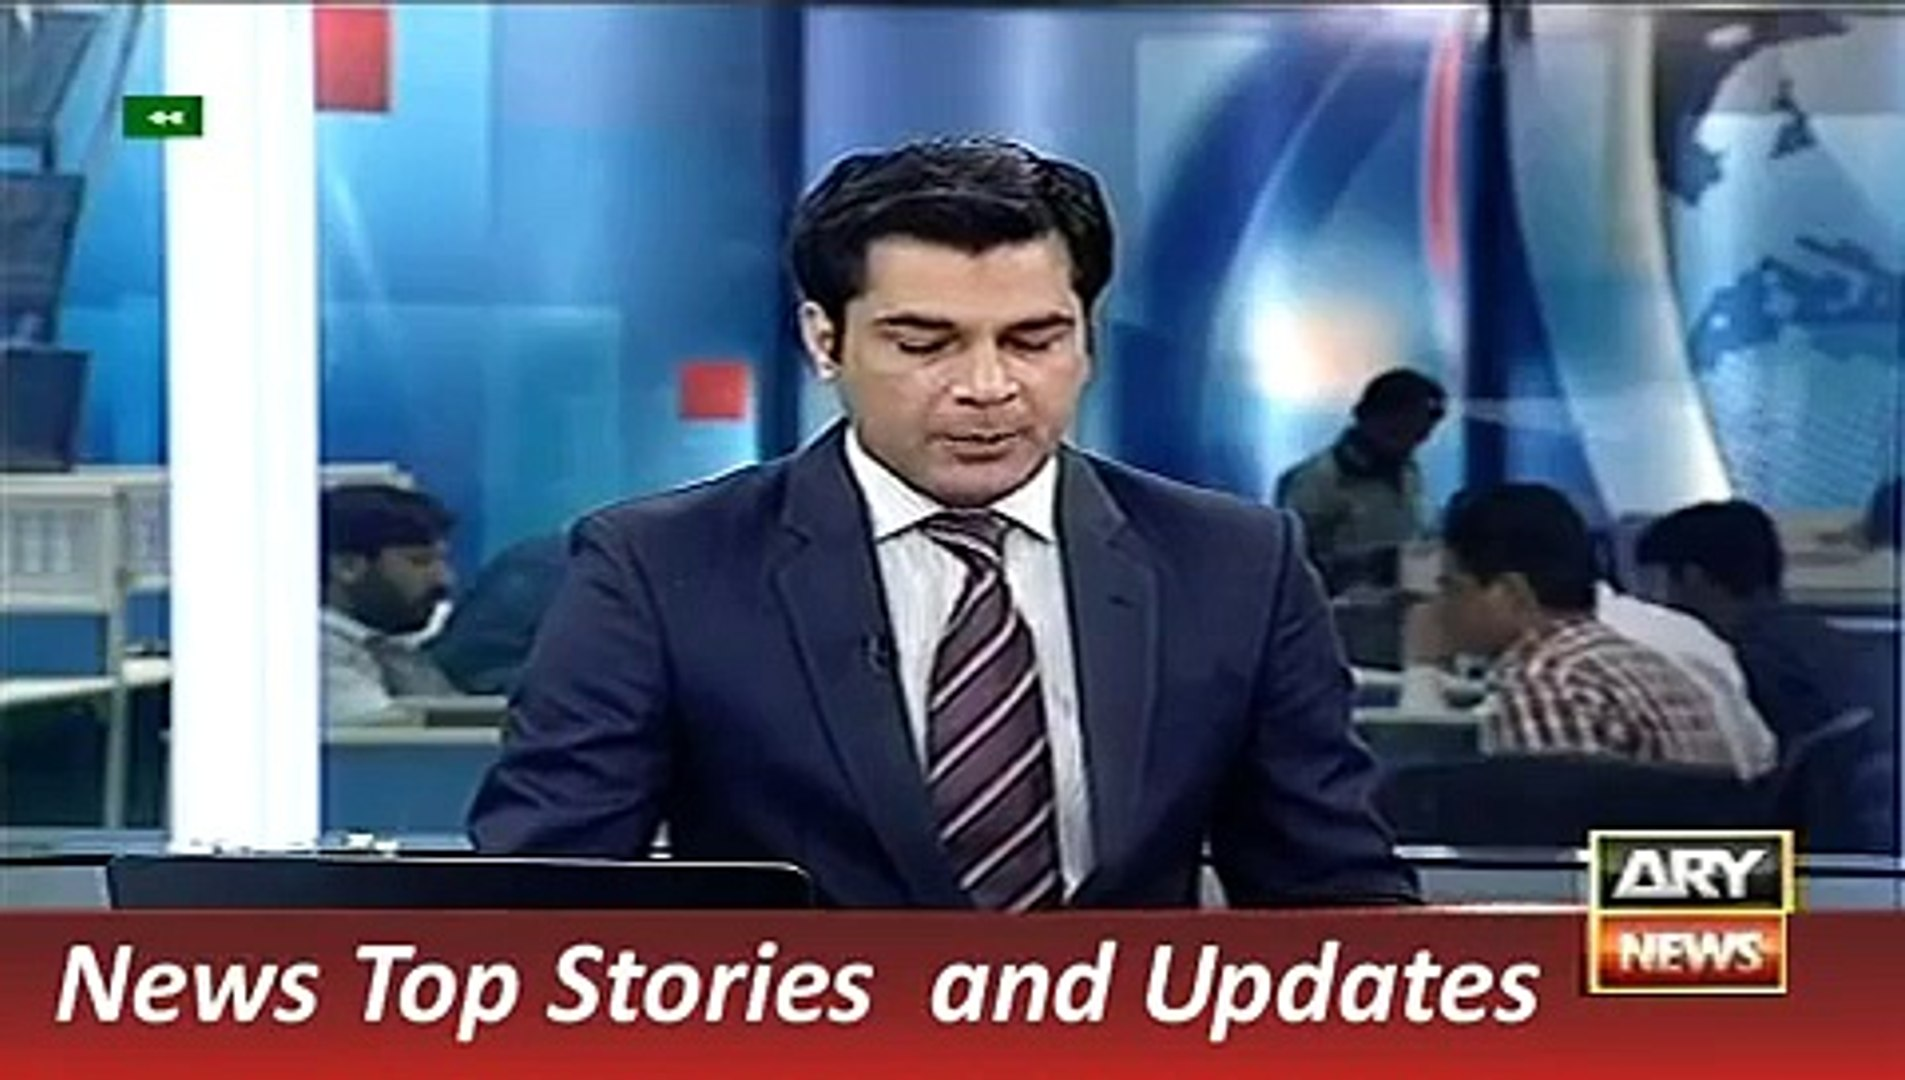 ARY News Headlines 13 December 2015, CM KPK and Imran Khan Conflict on 16th December Holiday